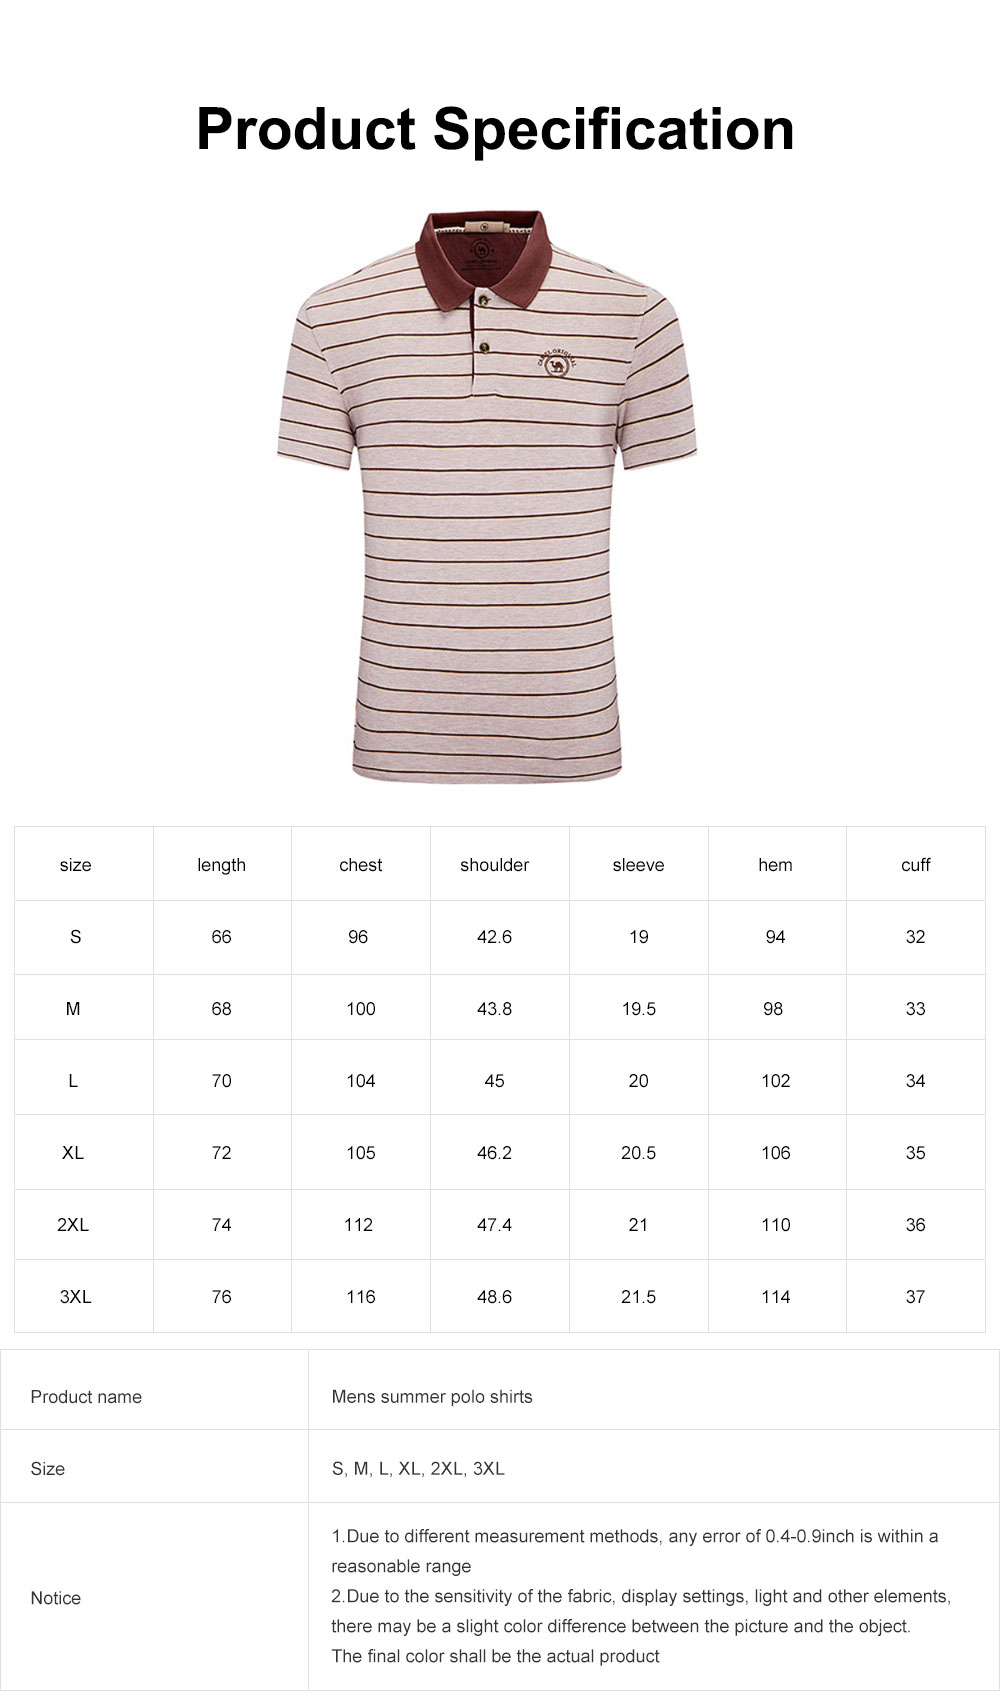 Mens Summer Polo Shirts, Slim Fit Stripe Cotton Short Sleeve Tees, Casual T-Shirts for Gym Exercise Fitness Running Hiking 6